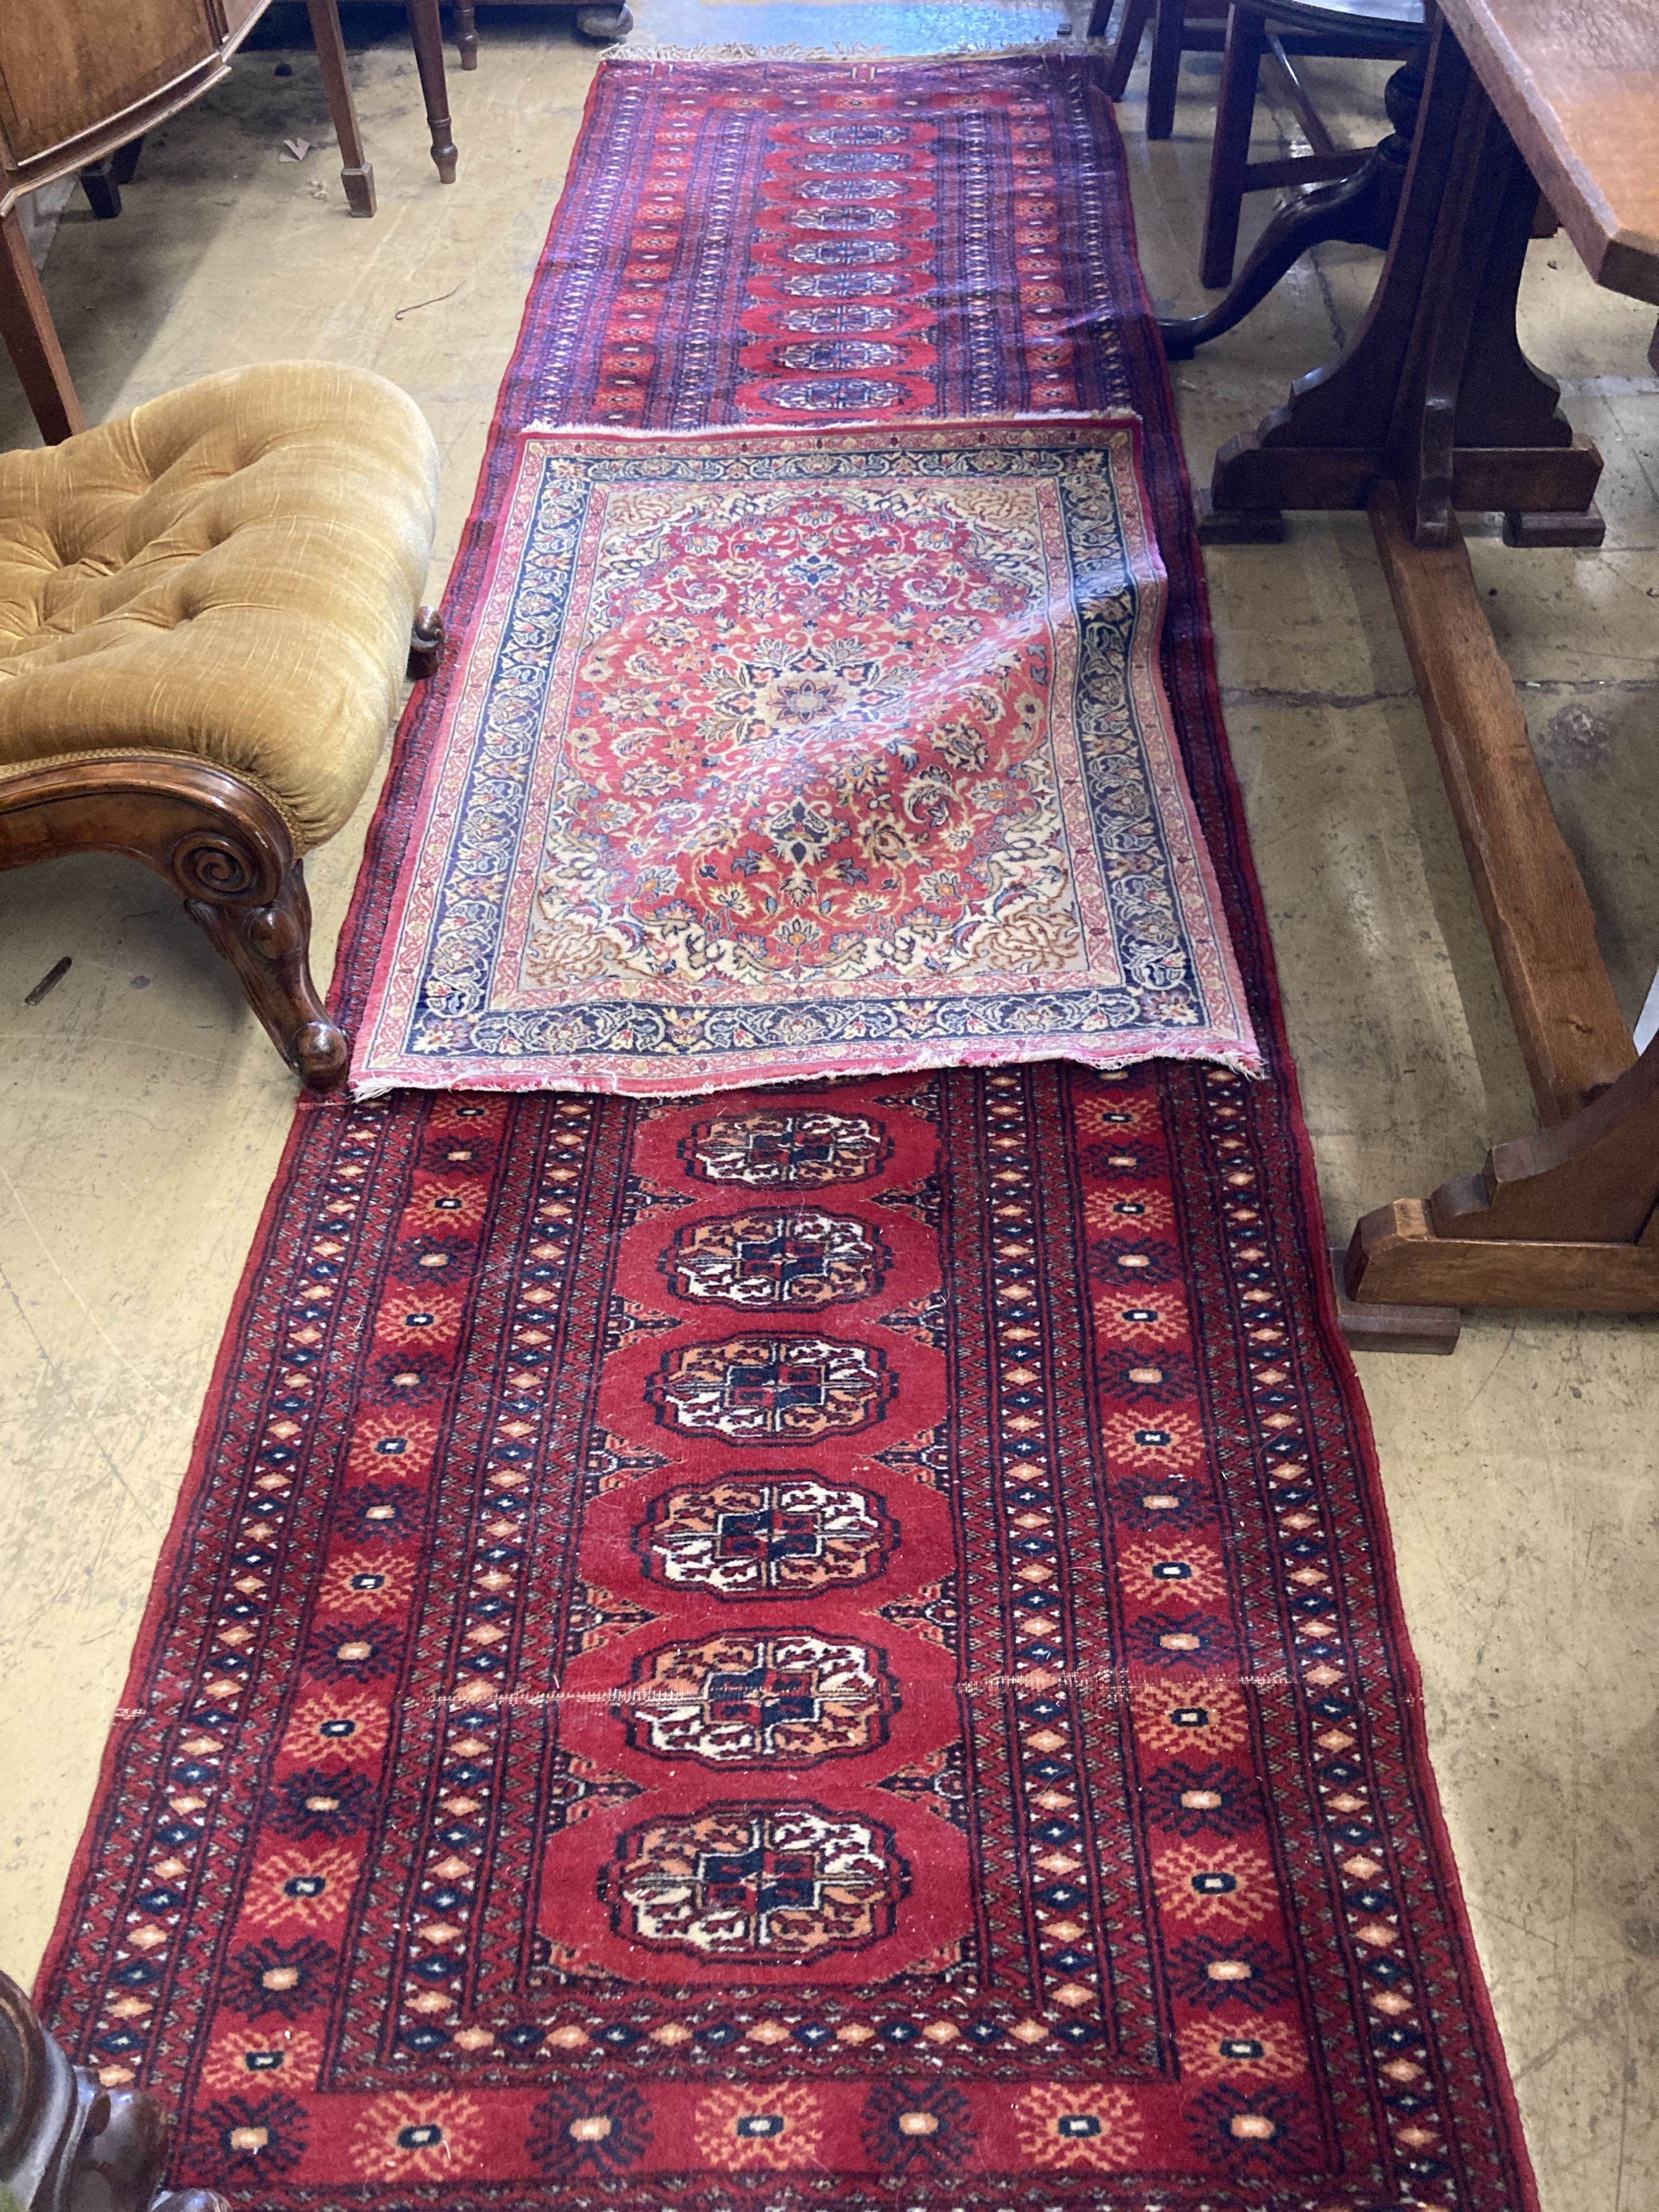 A Bokhara red ground runner, 305 x 80cm, together with a smaller Kashan style rug